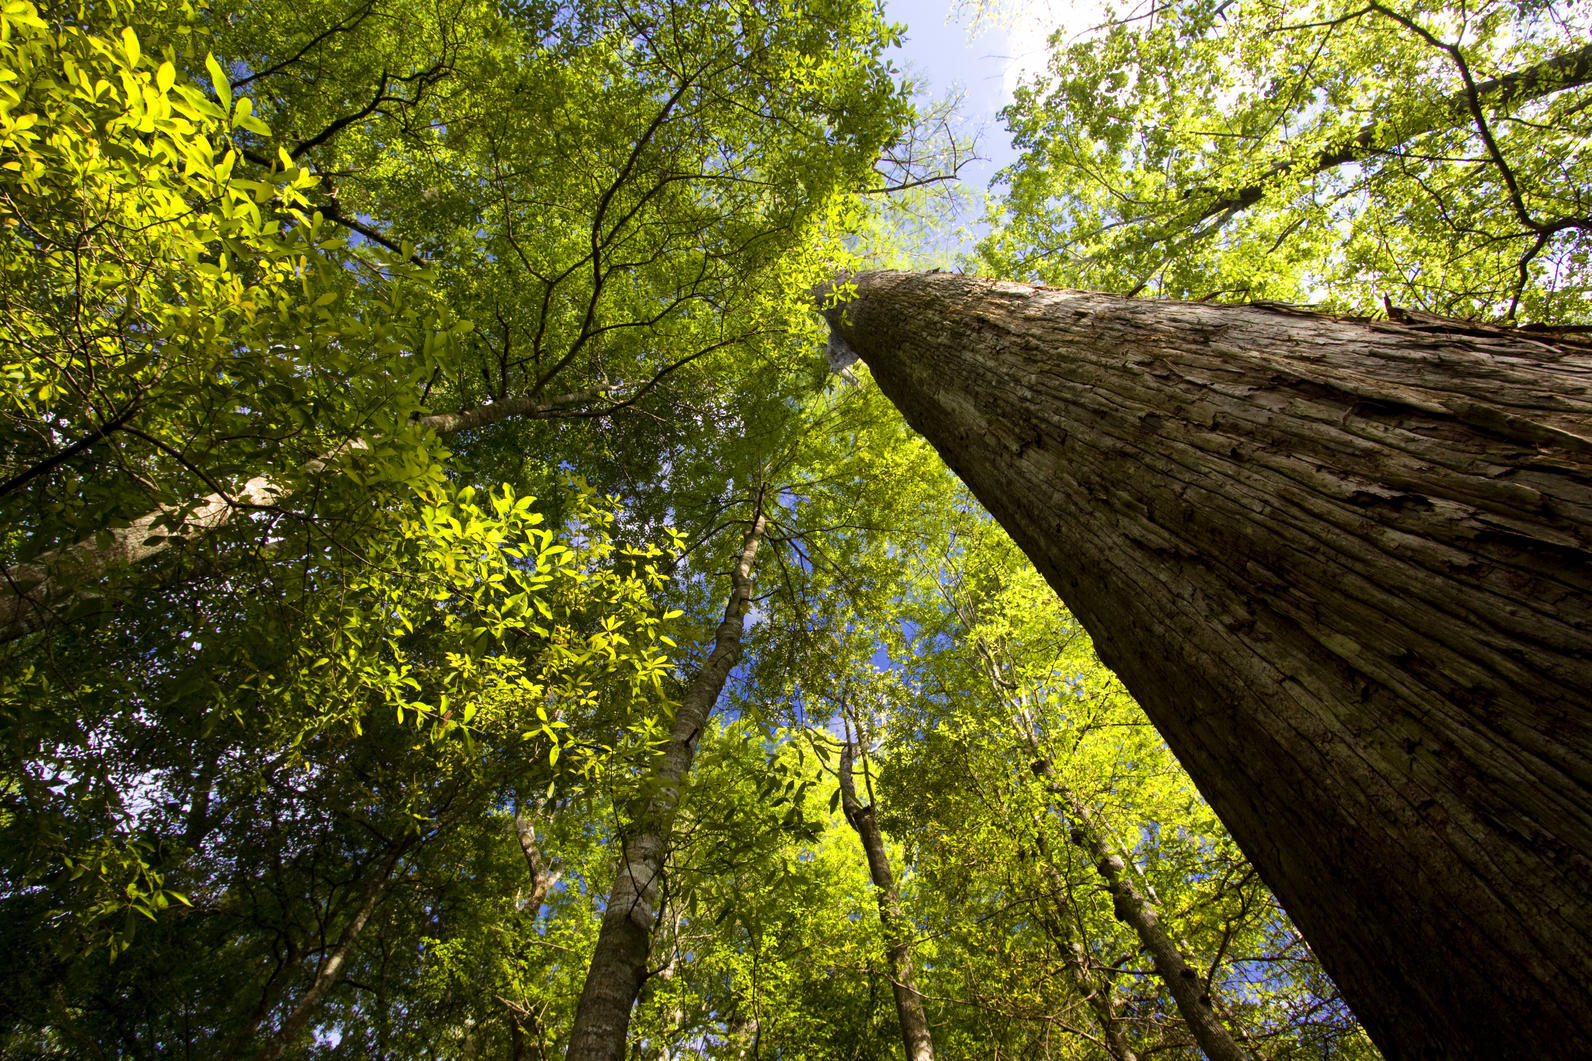 Ancient cypress trees at ASC's Beidler Forest are protected thanks in part to CB funds.